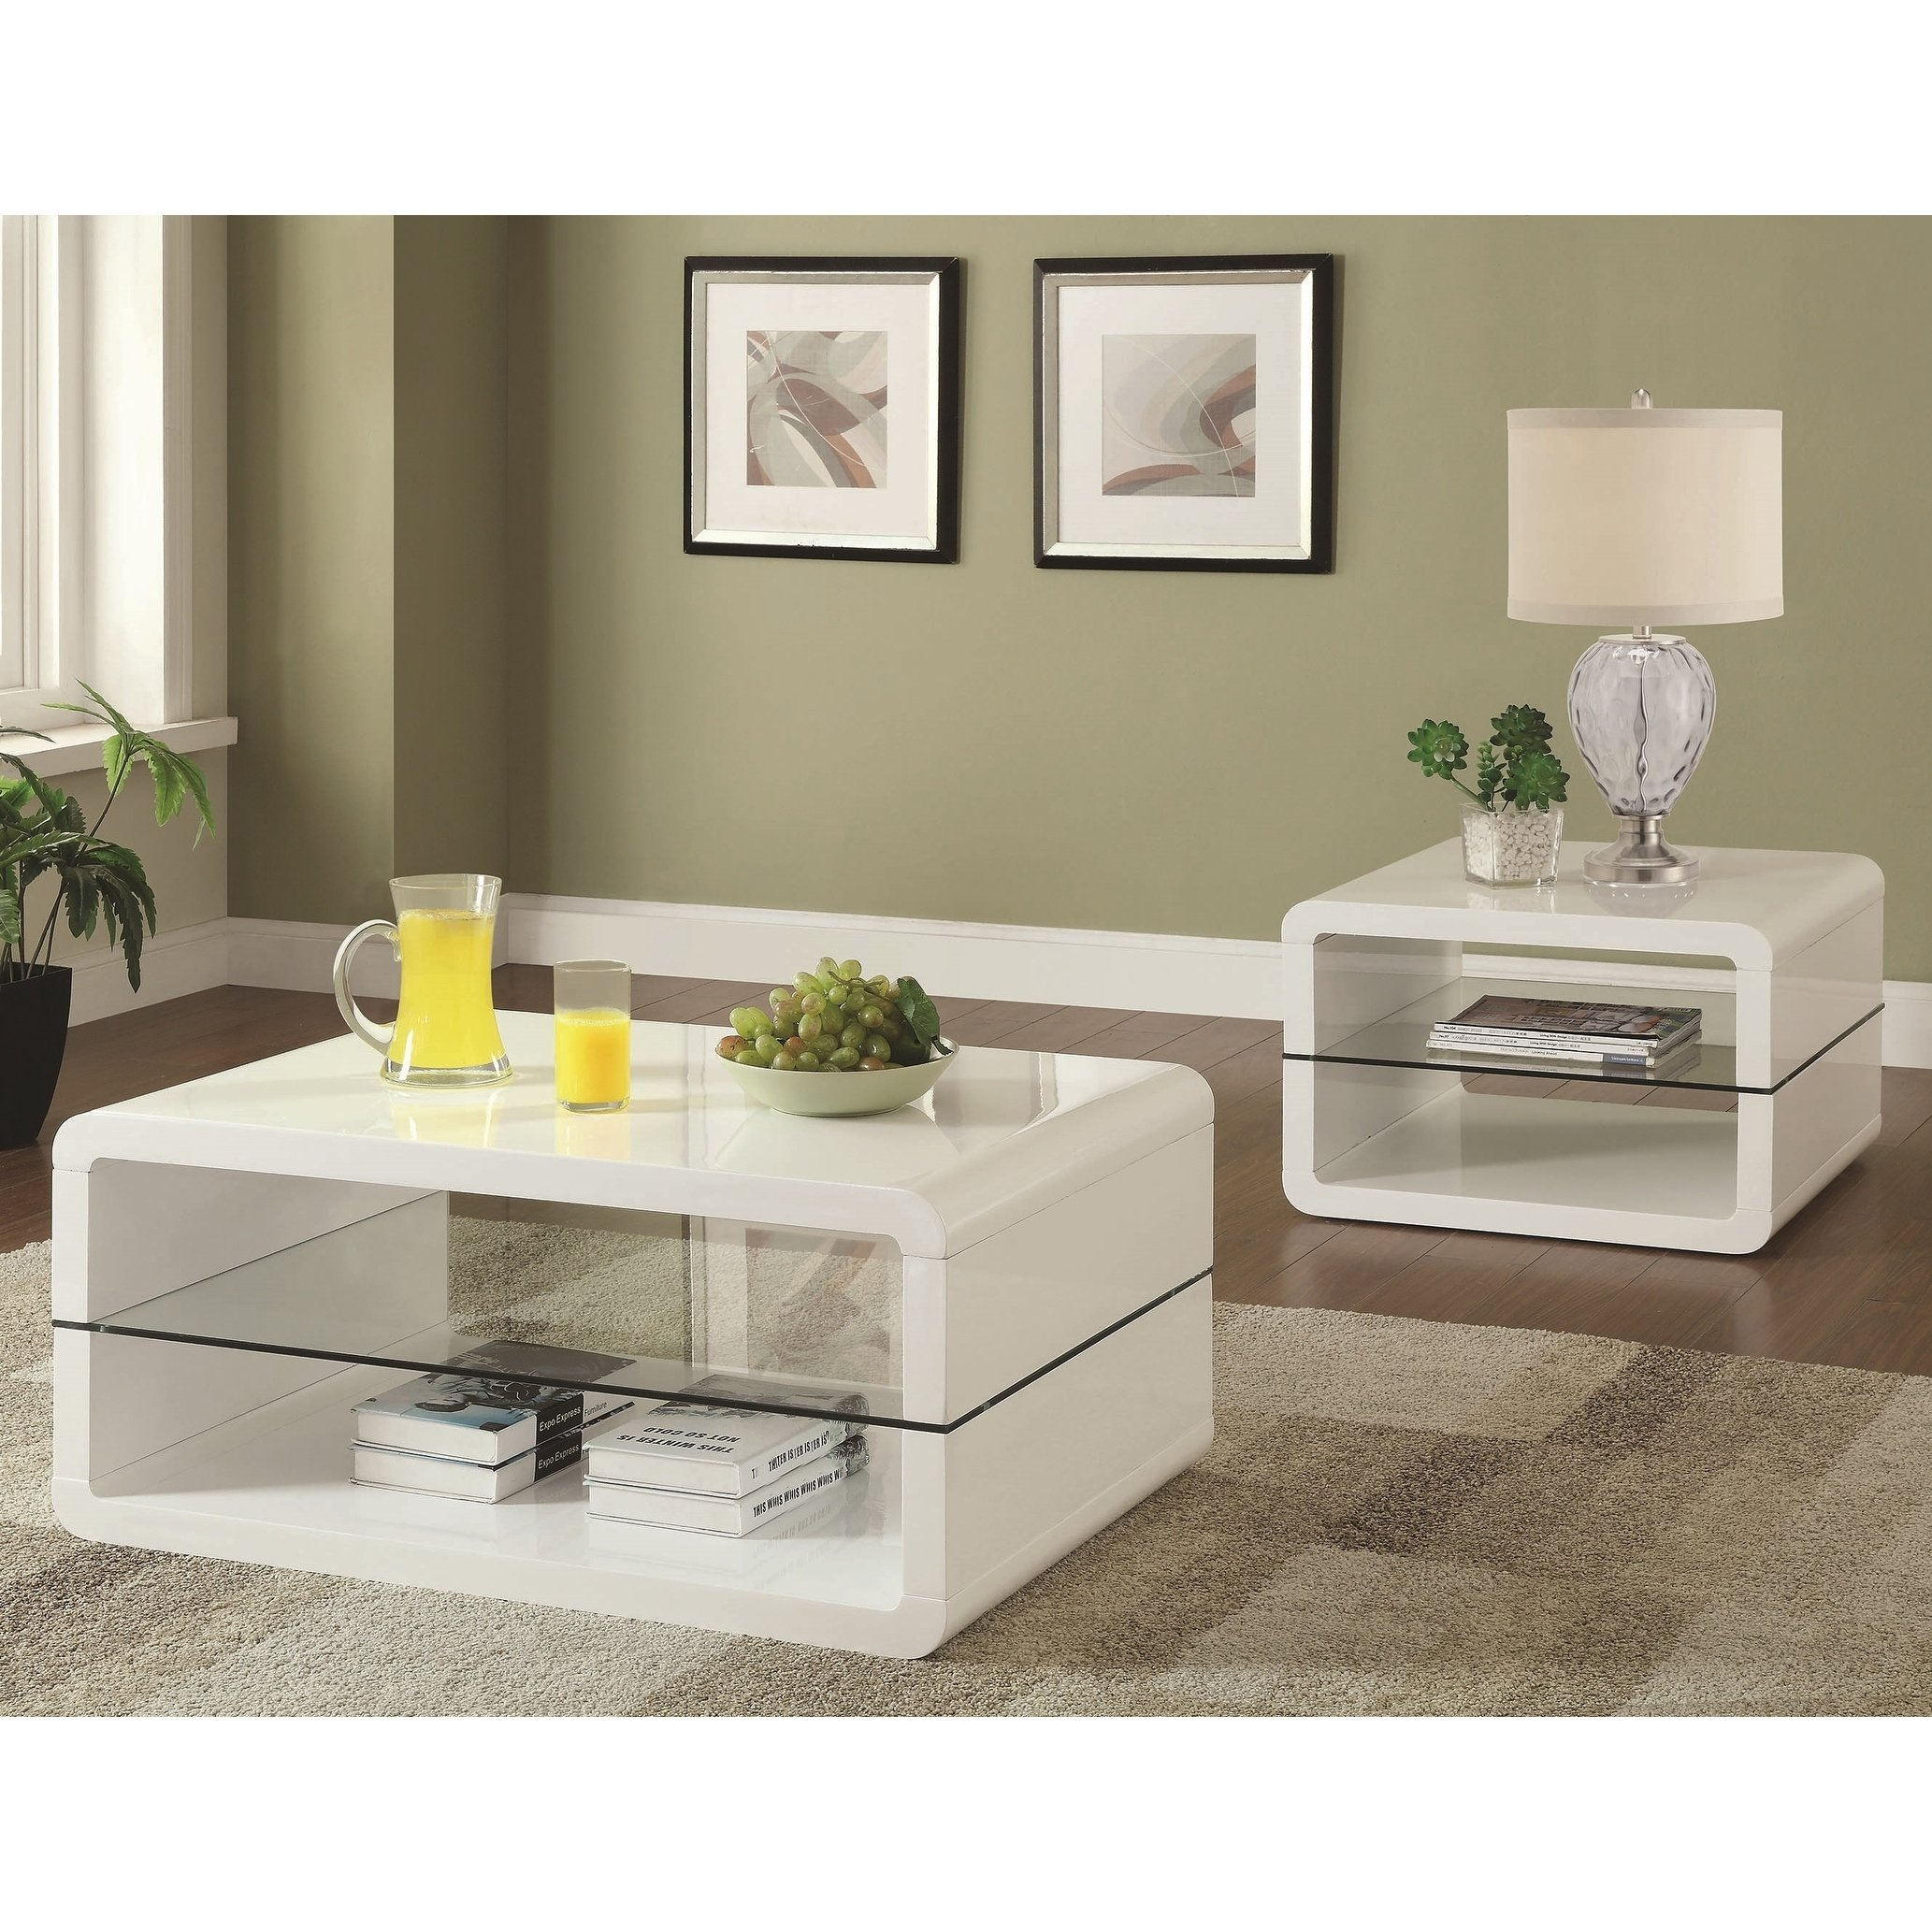 modern cube design living room accent table collection with glass shelf small tables free shipping today lamp shades plus snack ikea long counter height rustic pedestal pier wall